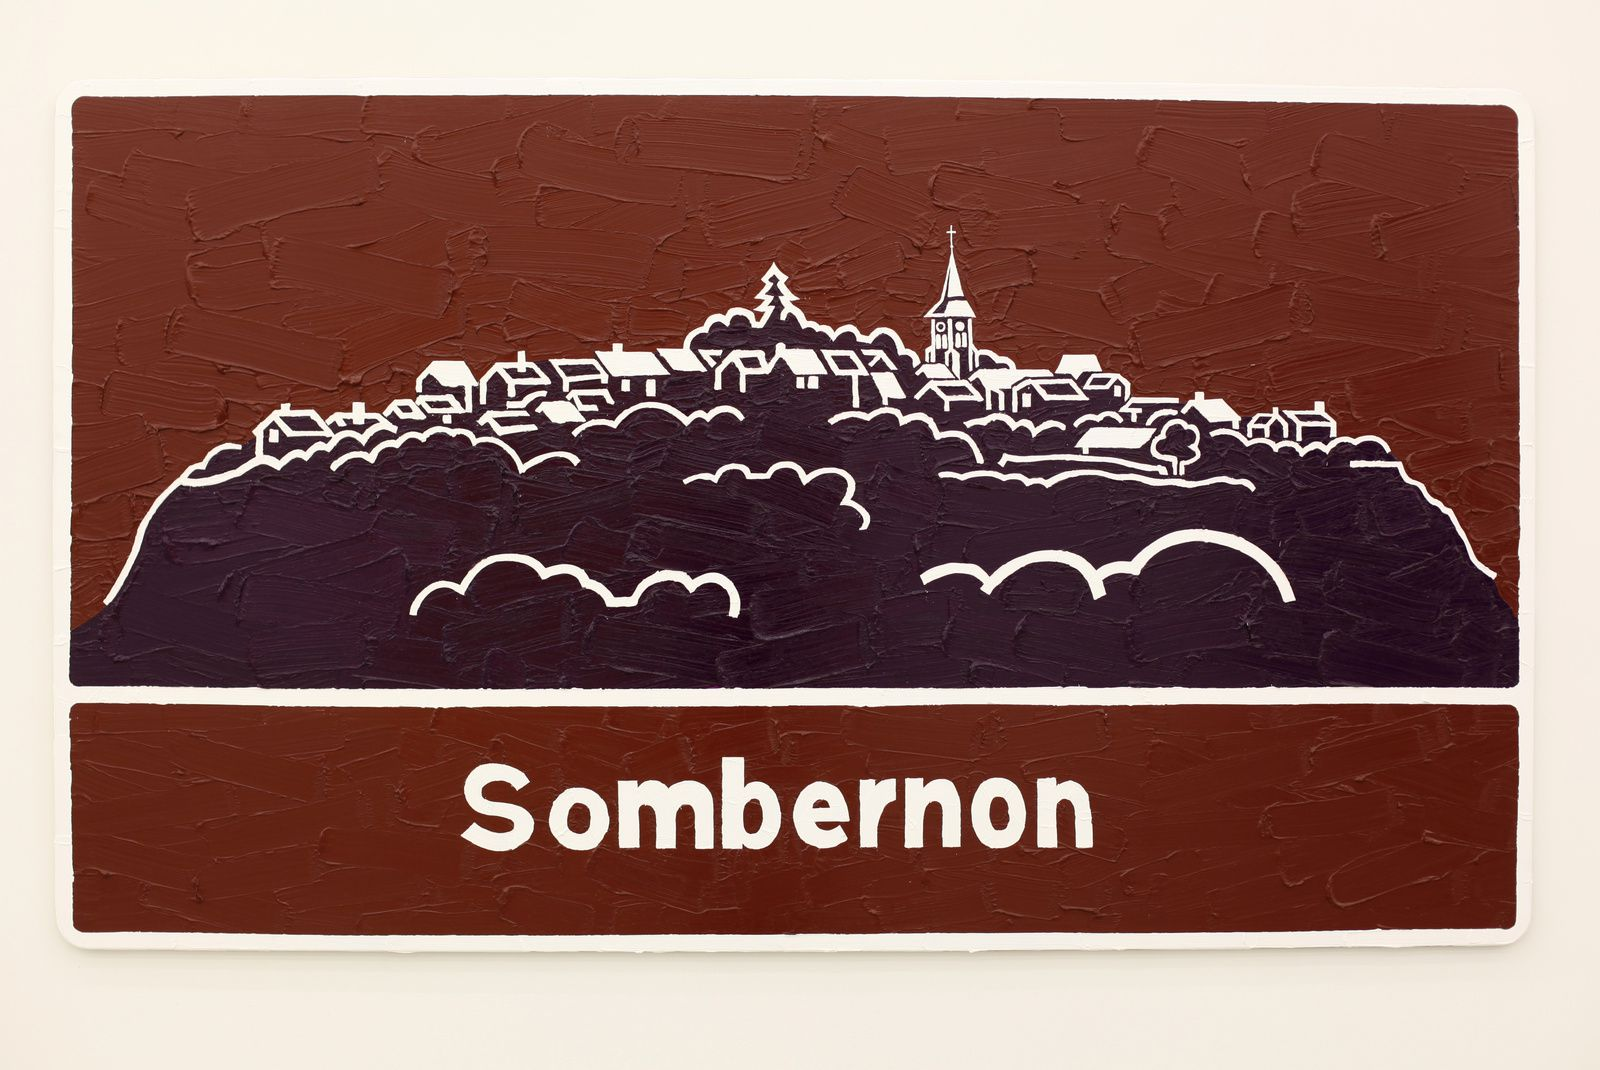 """Sombernon"", 2016 de Bertrand LAVIER - Courtesy Galerie Almine Rech © Photo Éric Simon"